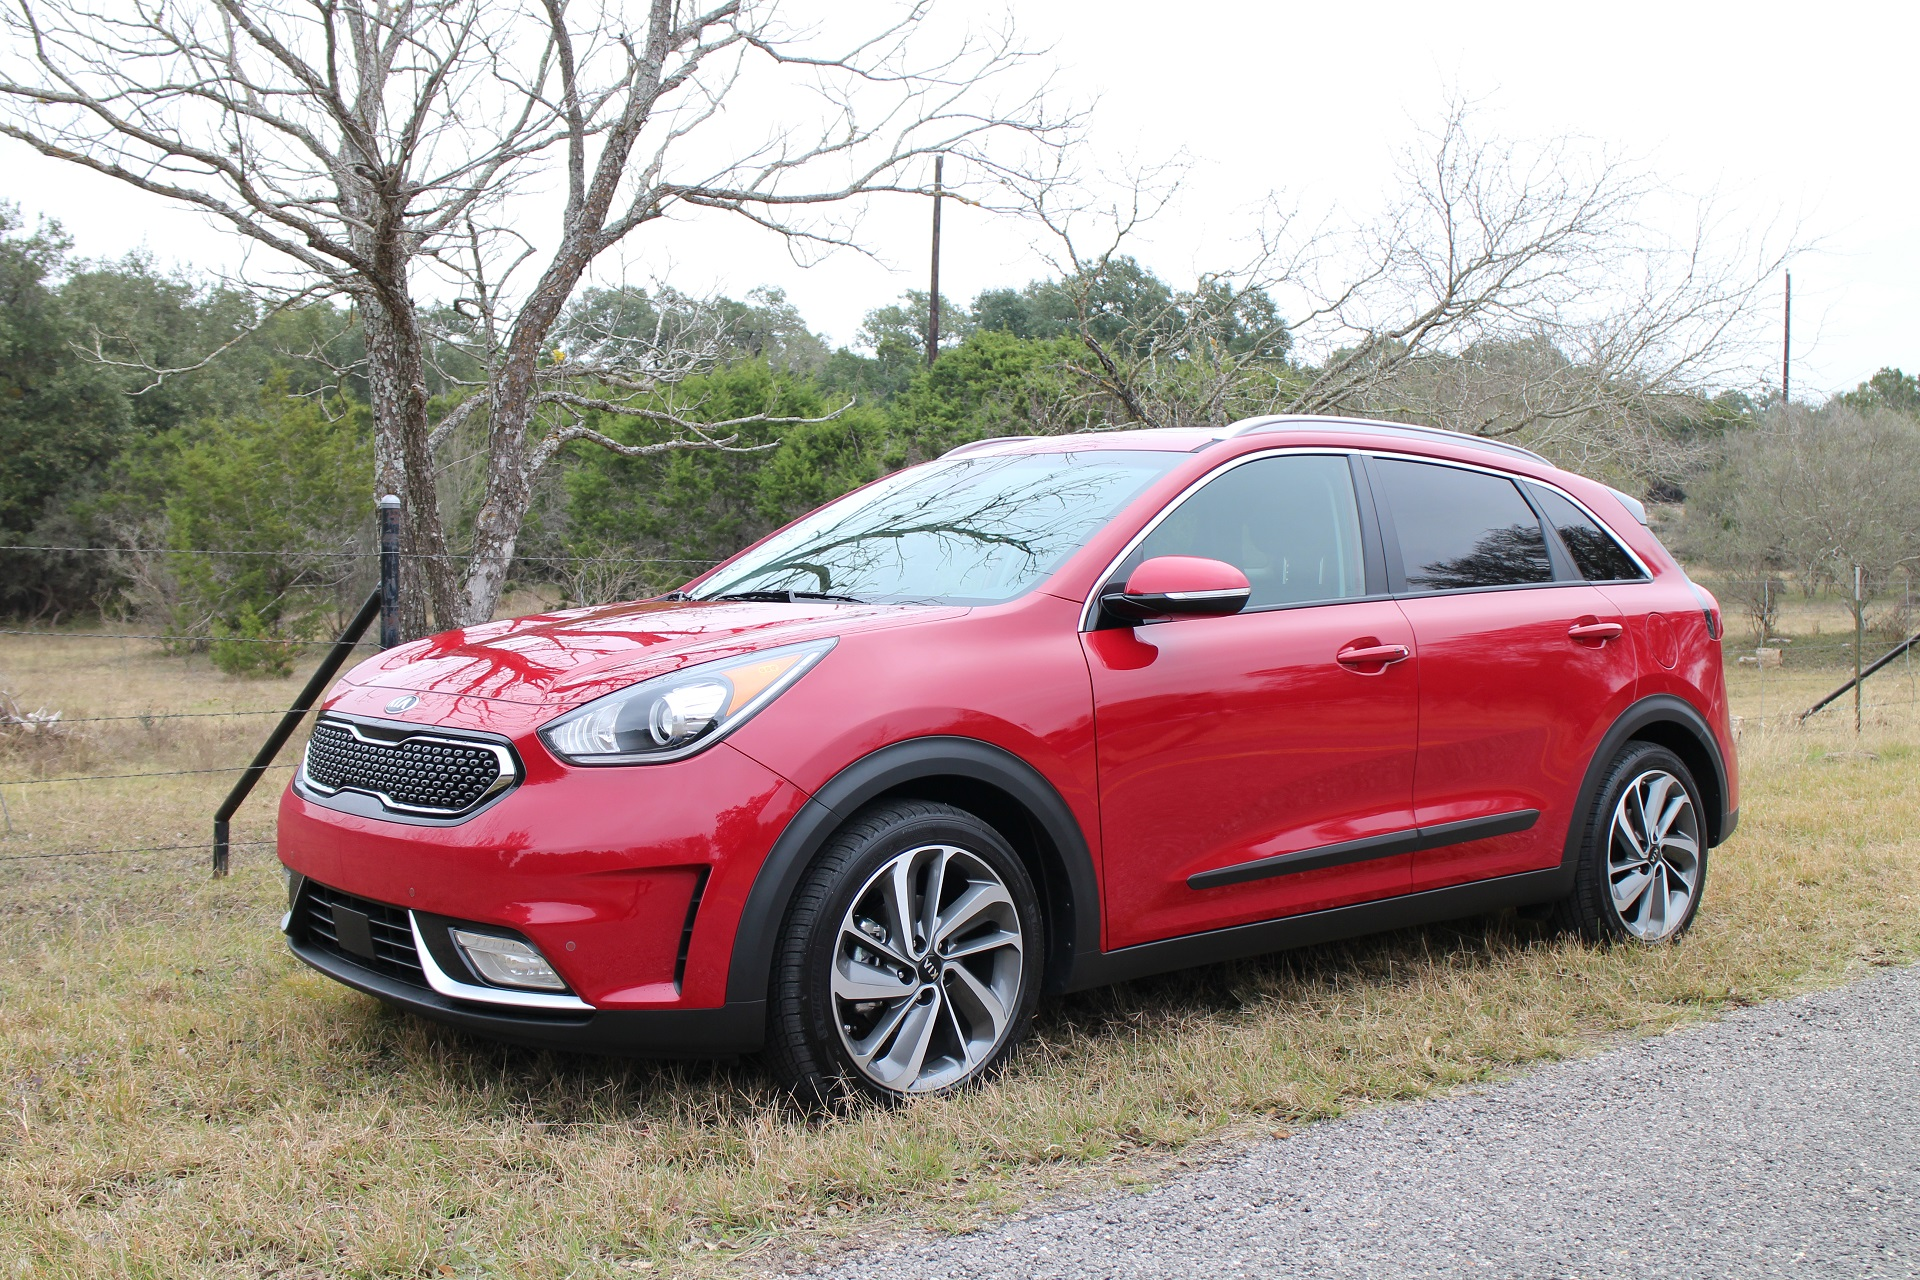 2017 kia niro hybrid first drive report. Black Bedroom Furniture Sets. Home Design Ideas